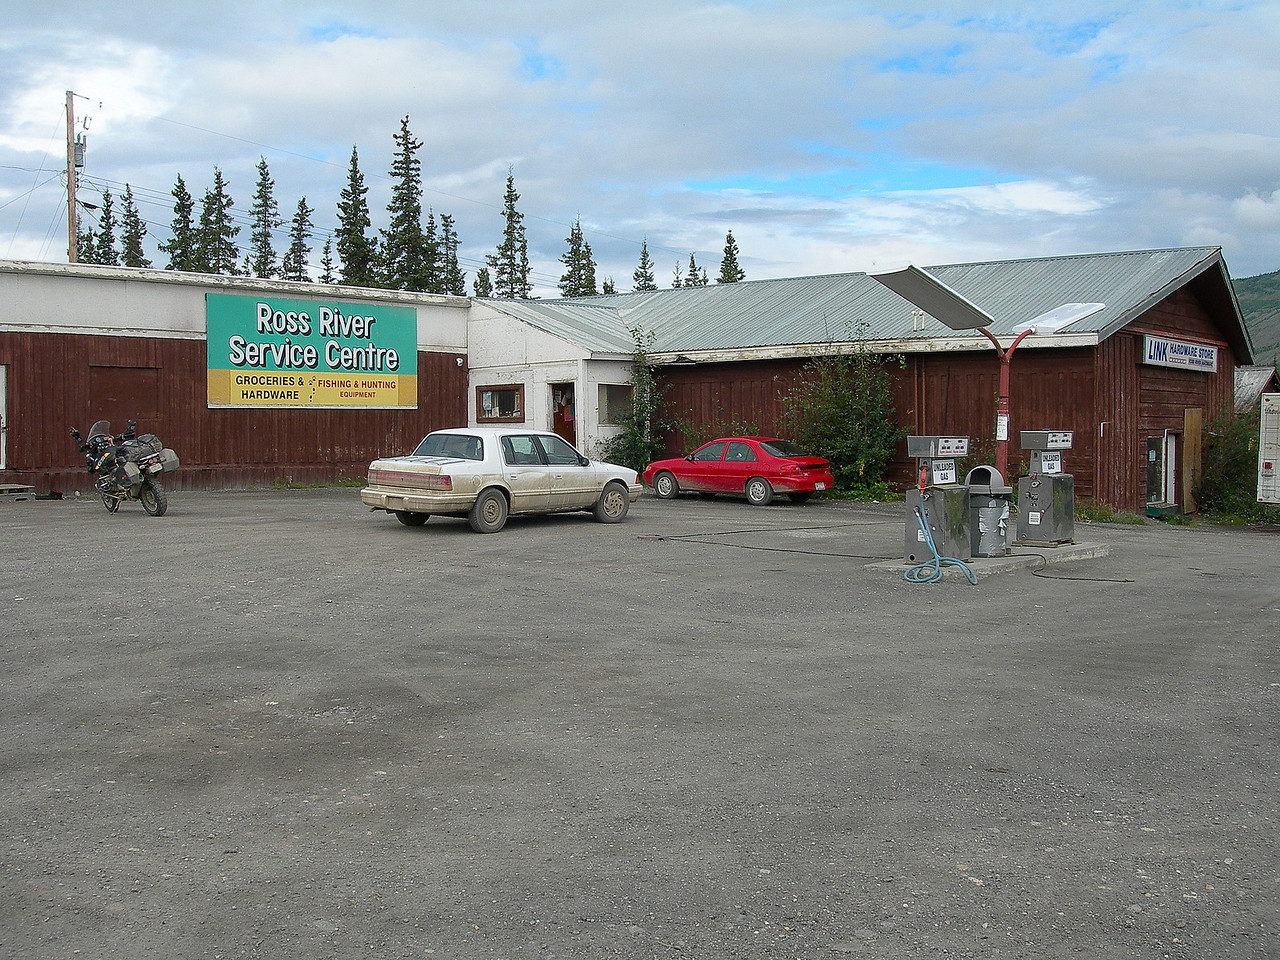 Finally arrived at the tiny village of Ross River at noon. I had driven 255 miles and seen 2 cars! Total isolation. I was very happy to have made it without incident and that the rain had stopped.